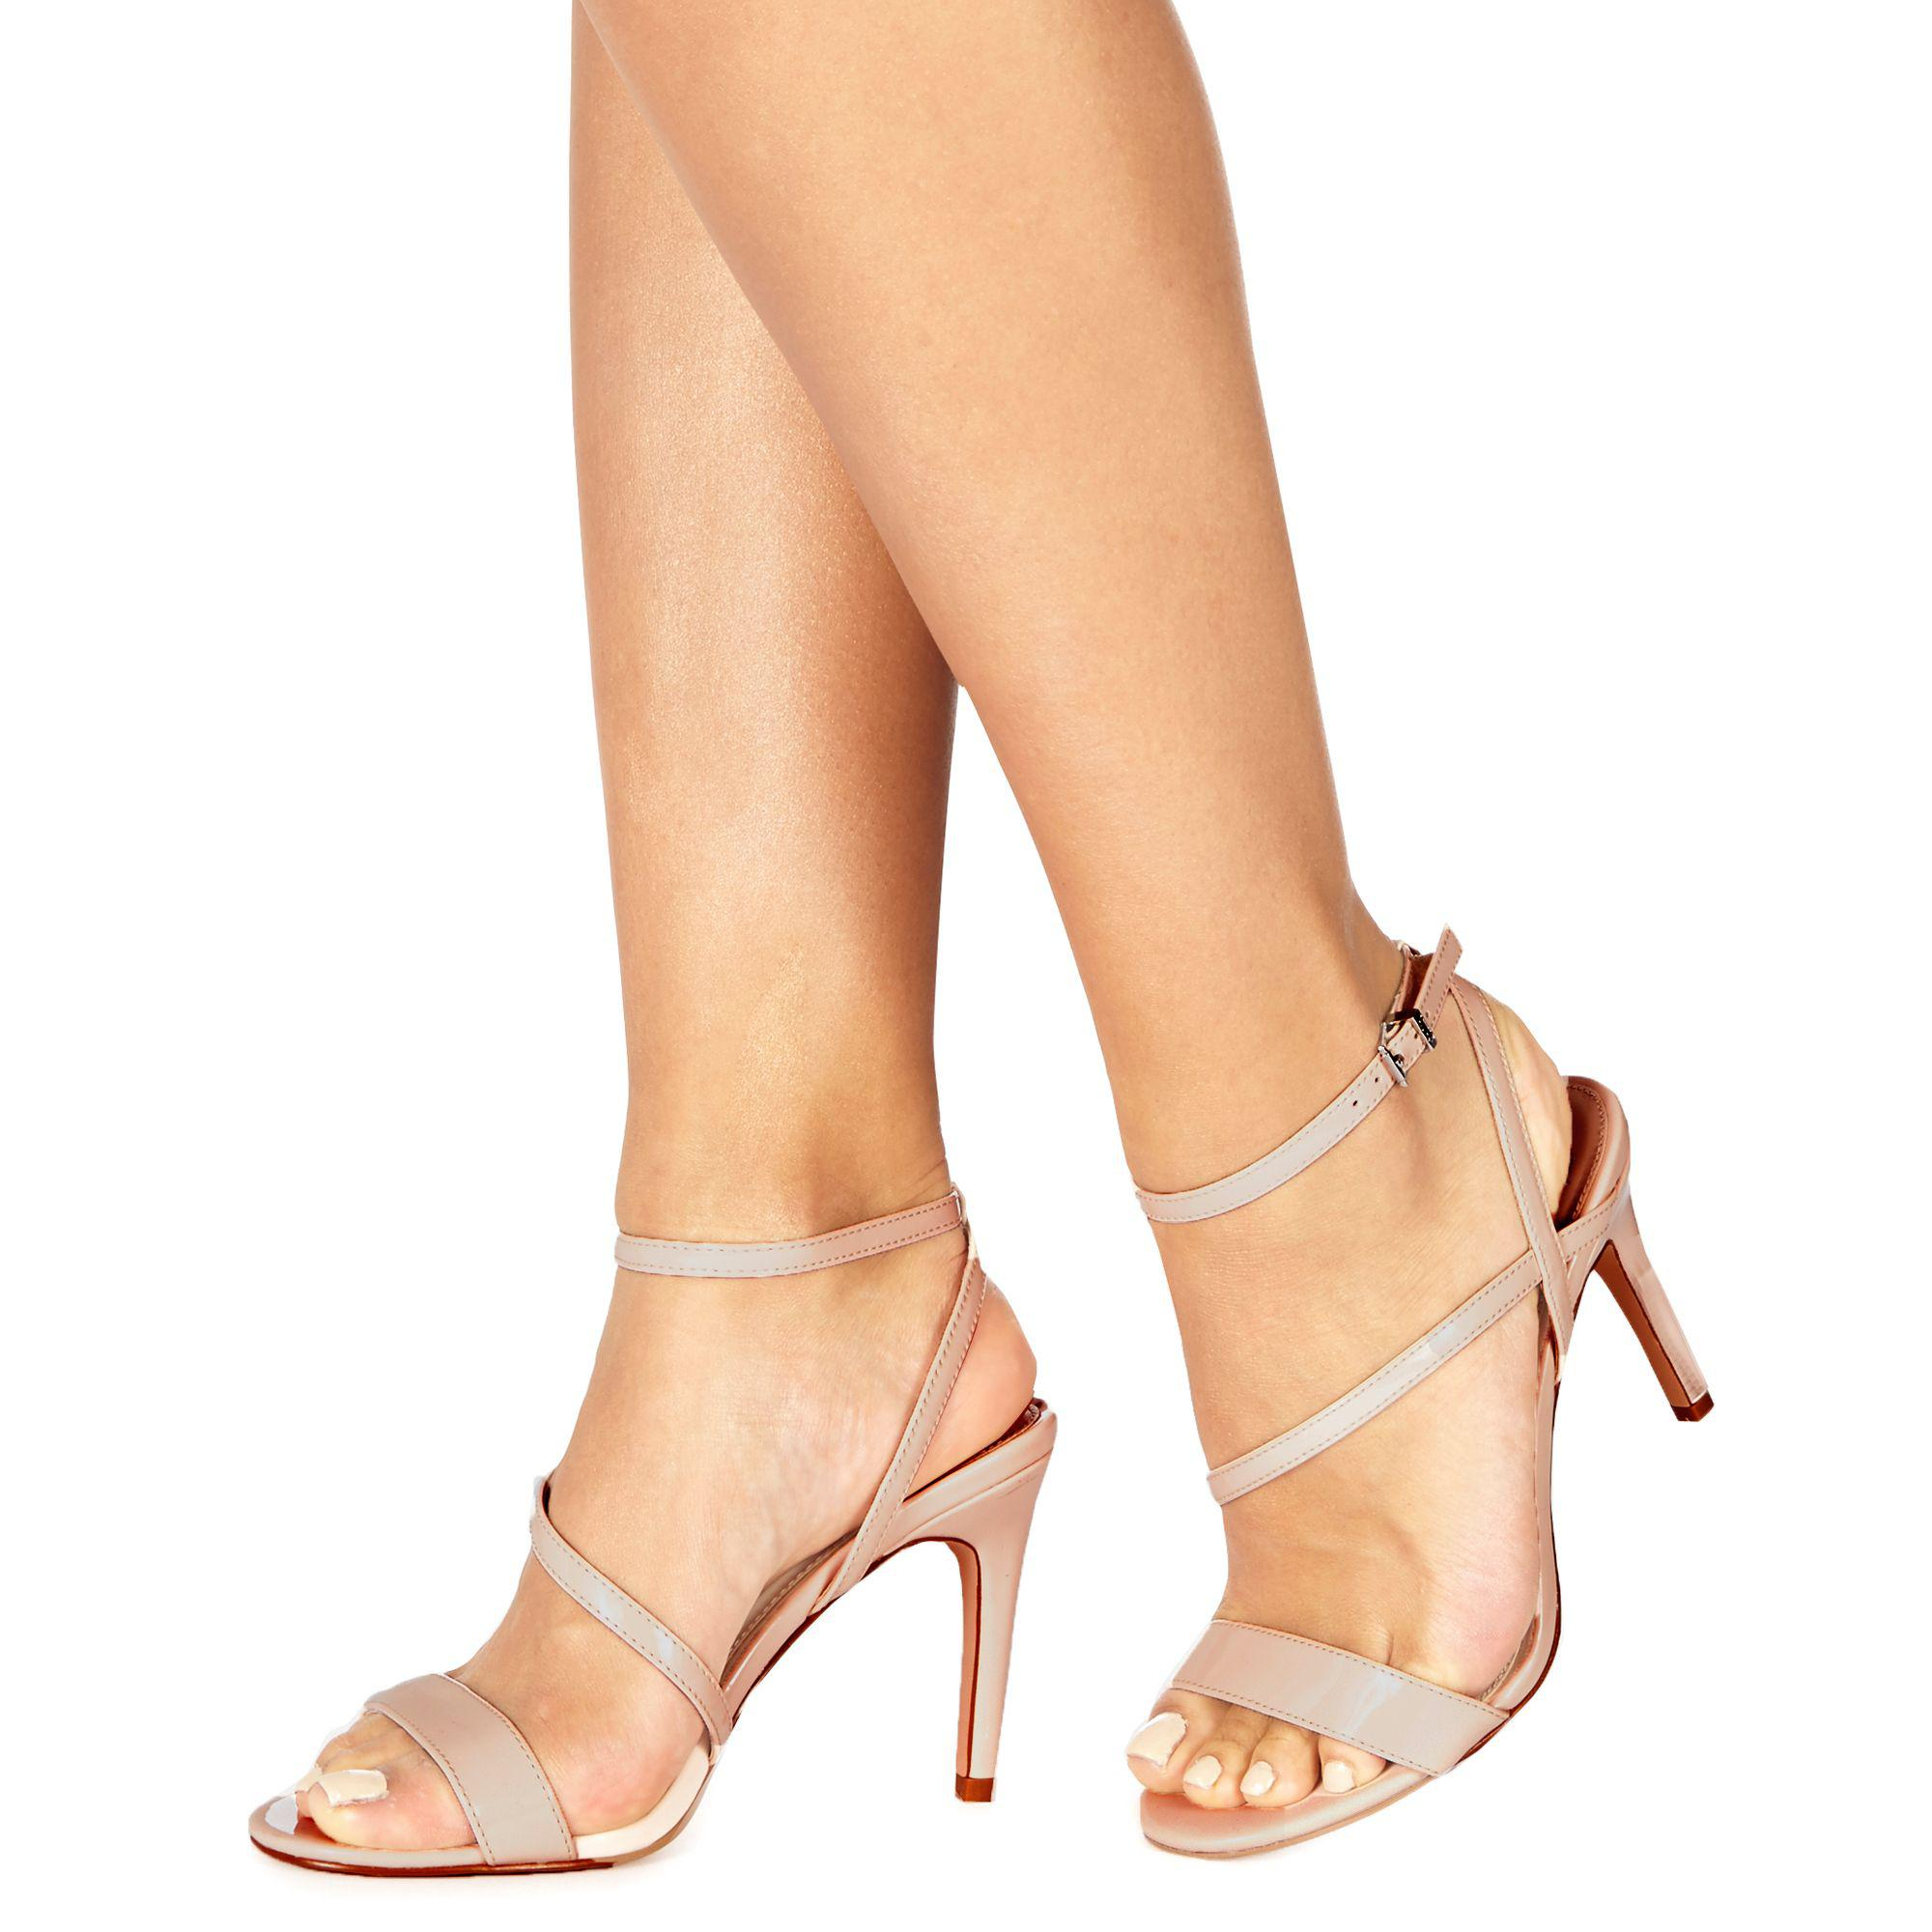 fc19d226e51 Faith Natural  delly  High Heel Wide Fit Ankle Strap Sandals in ...